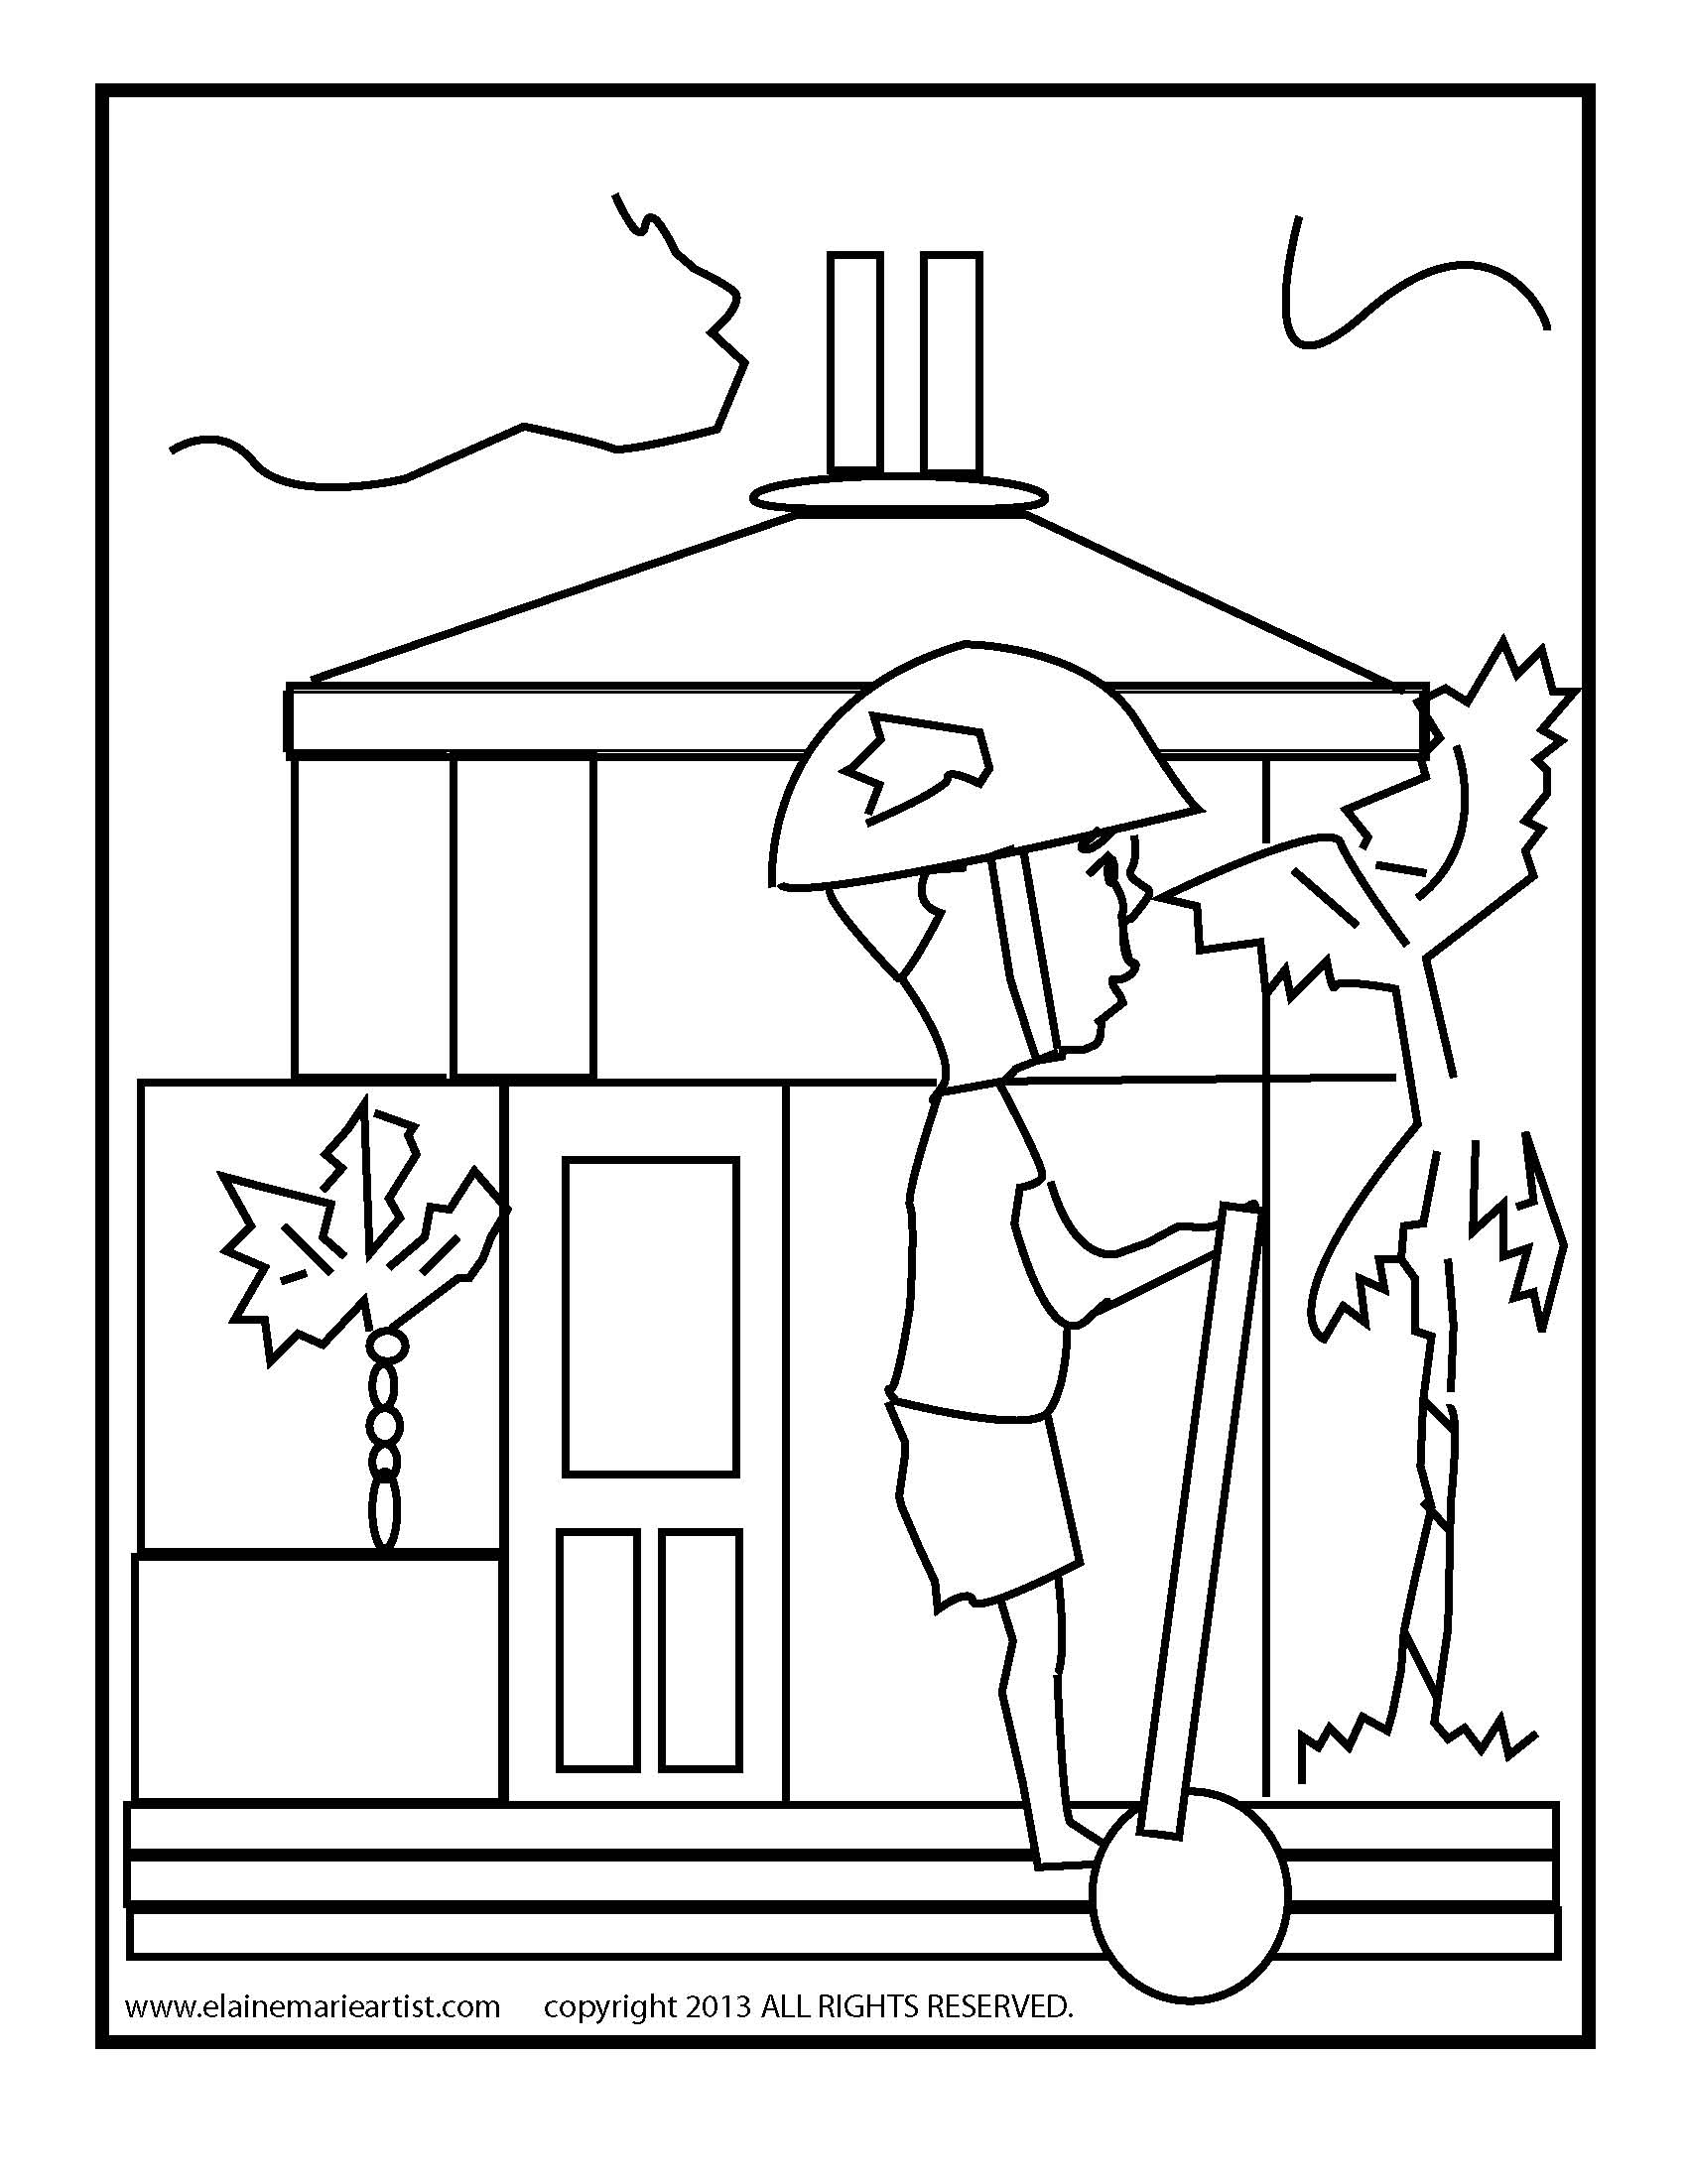 Mobile/post Office Building Coloring Coloring Pages